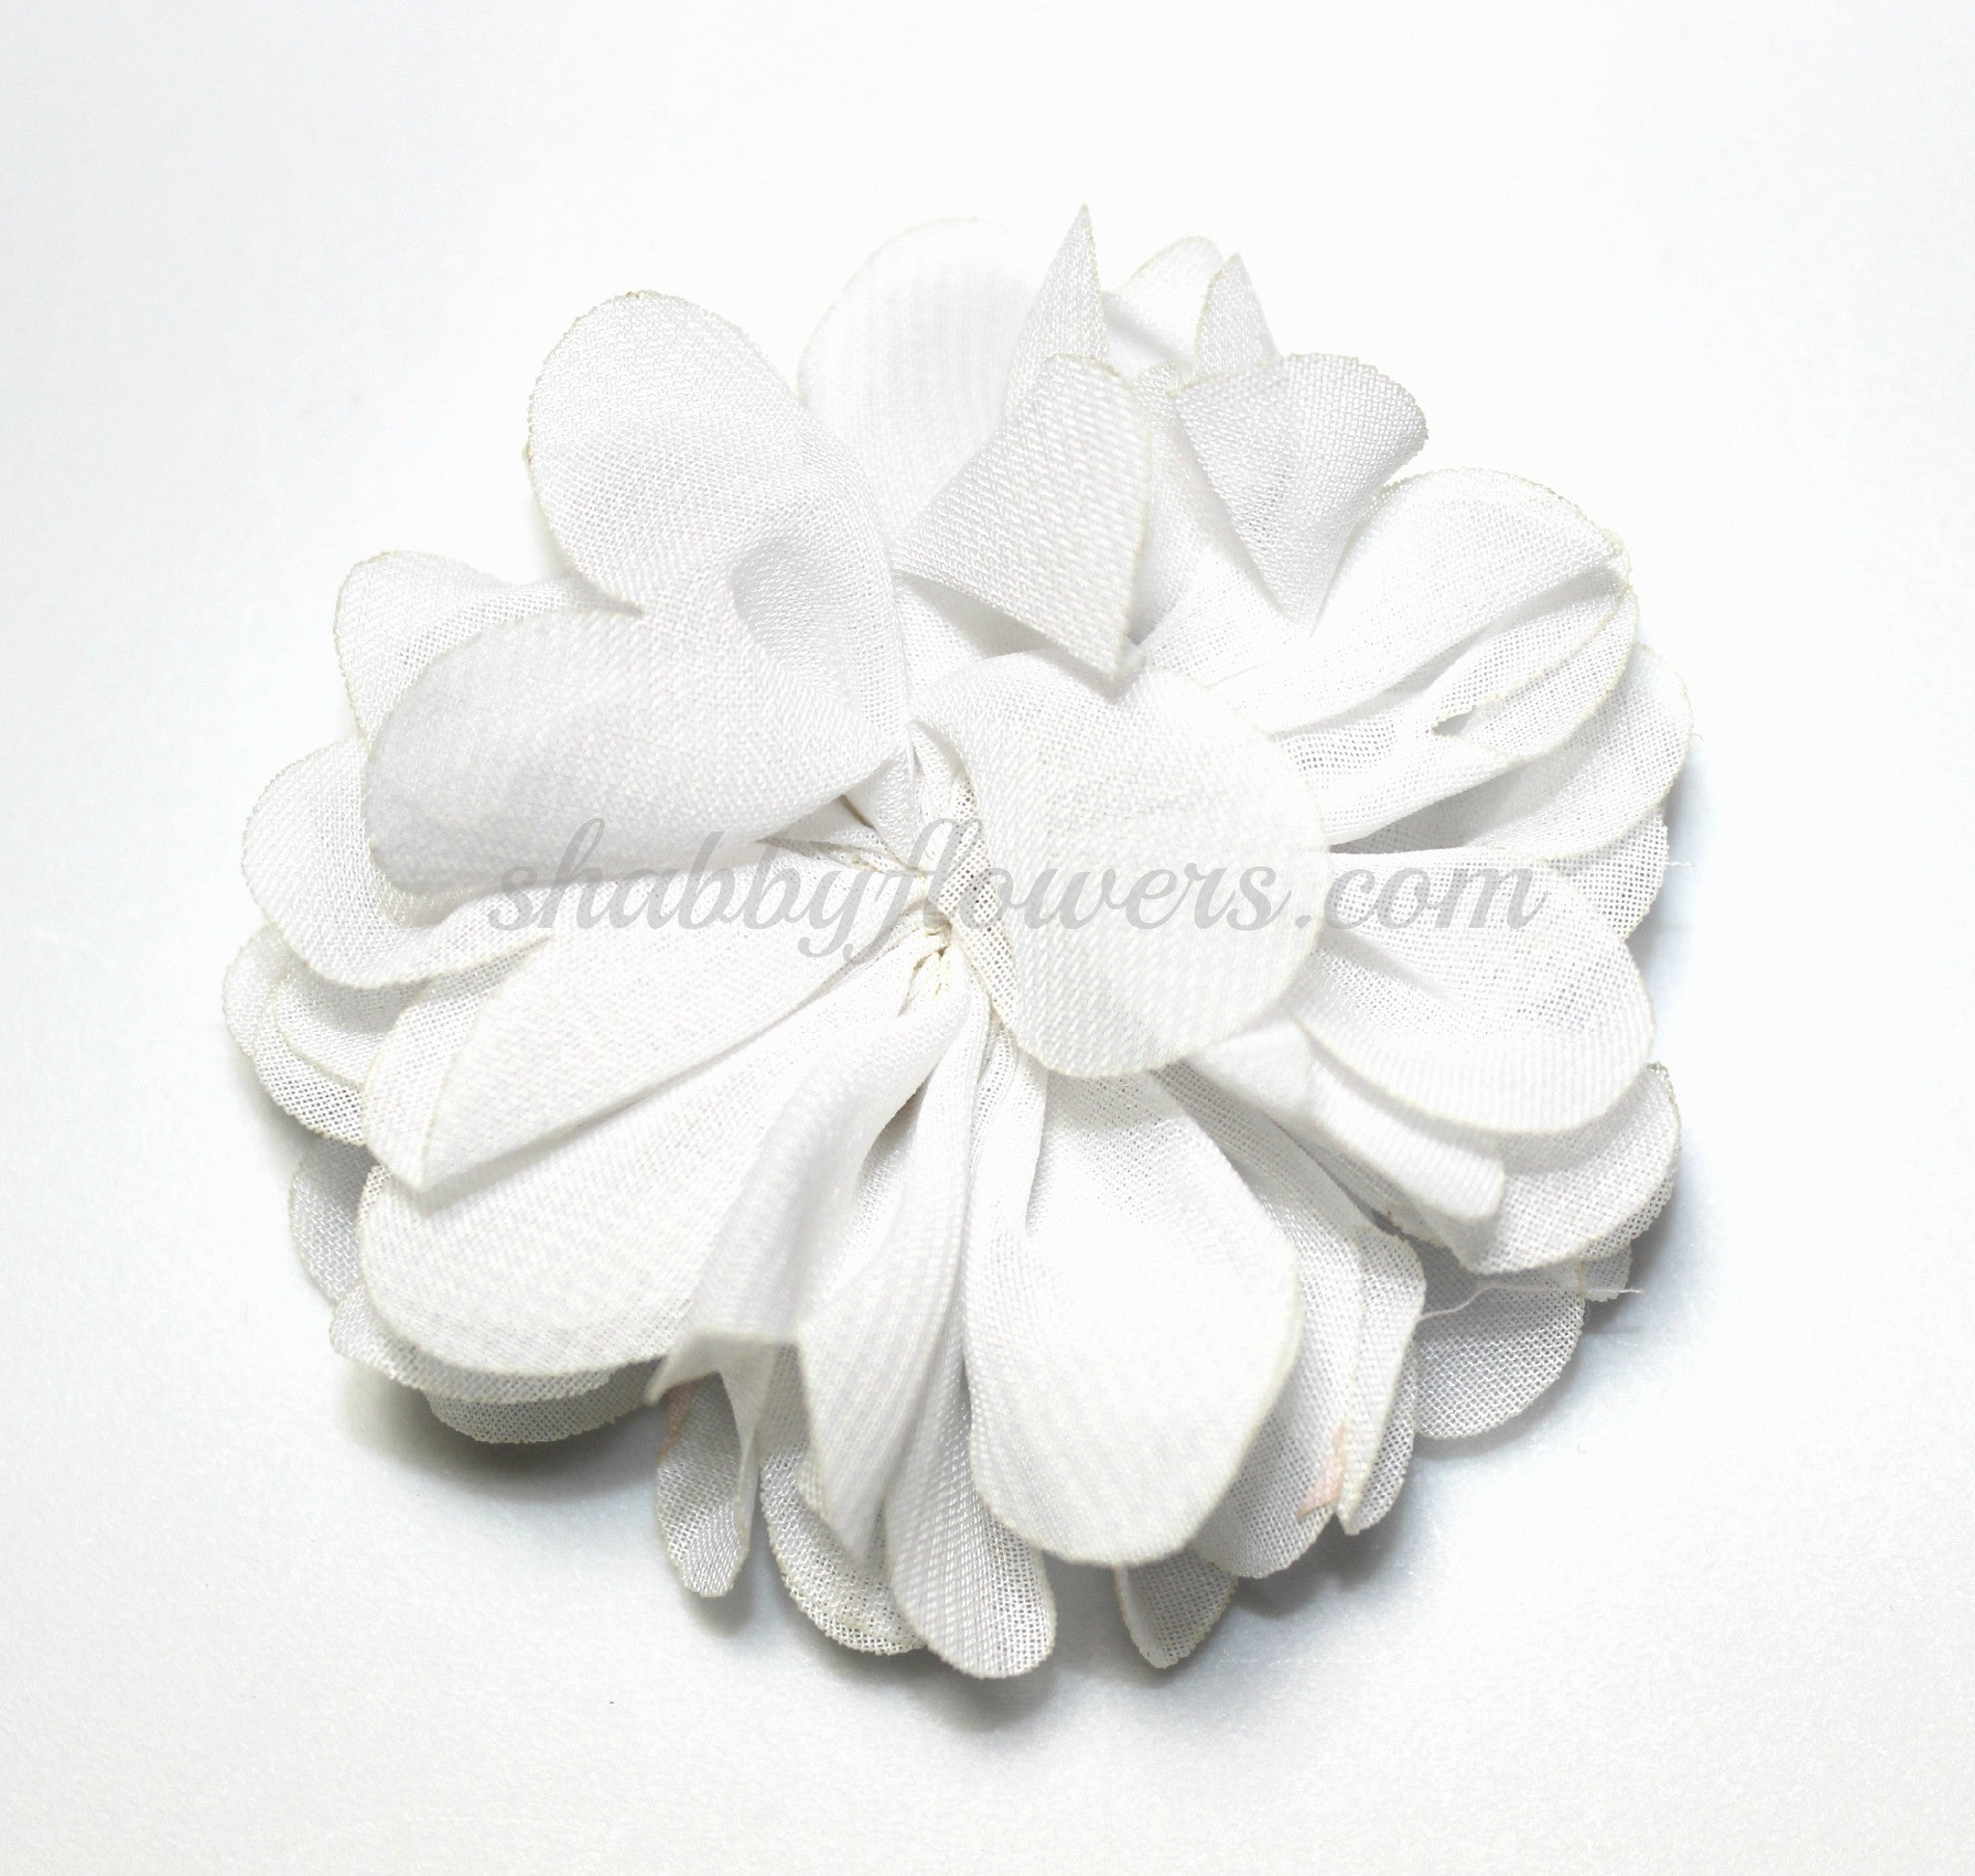 Scalloped Flower - White - shabbyflowers.com